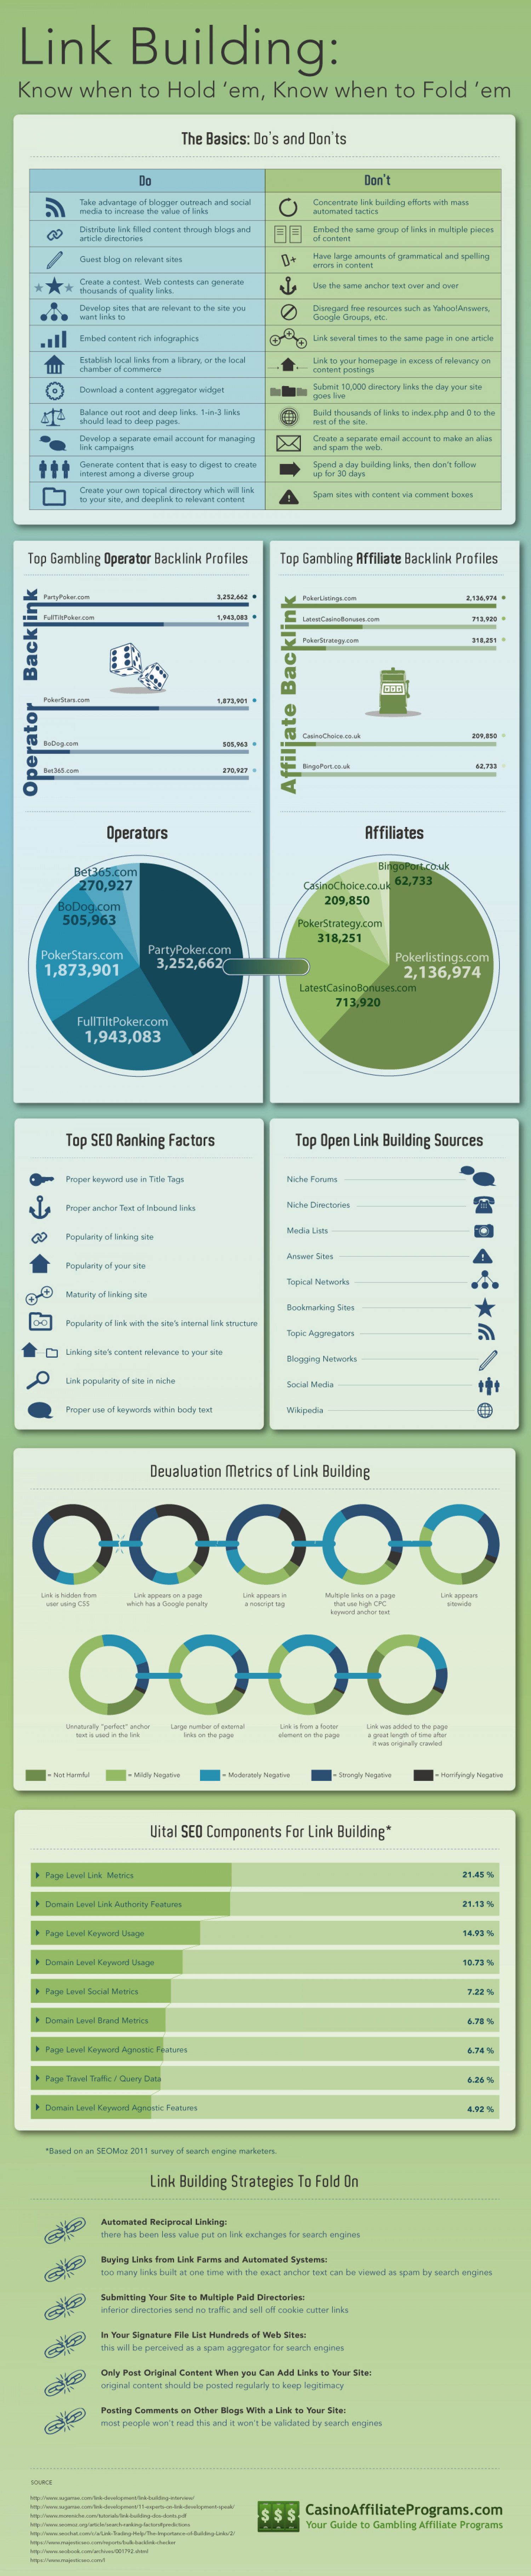 Link Building: Know When to Hold'em, and Know When to Fold'em Infographic